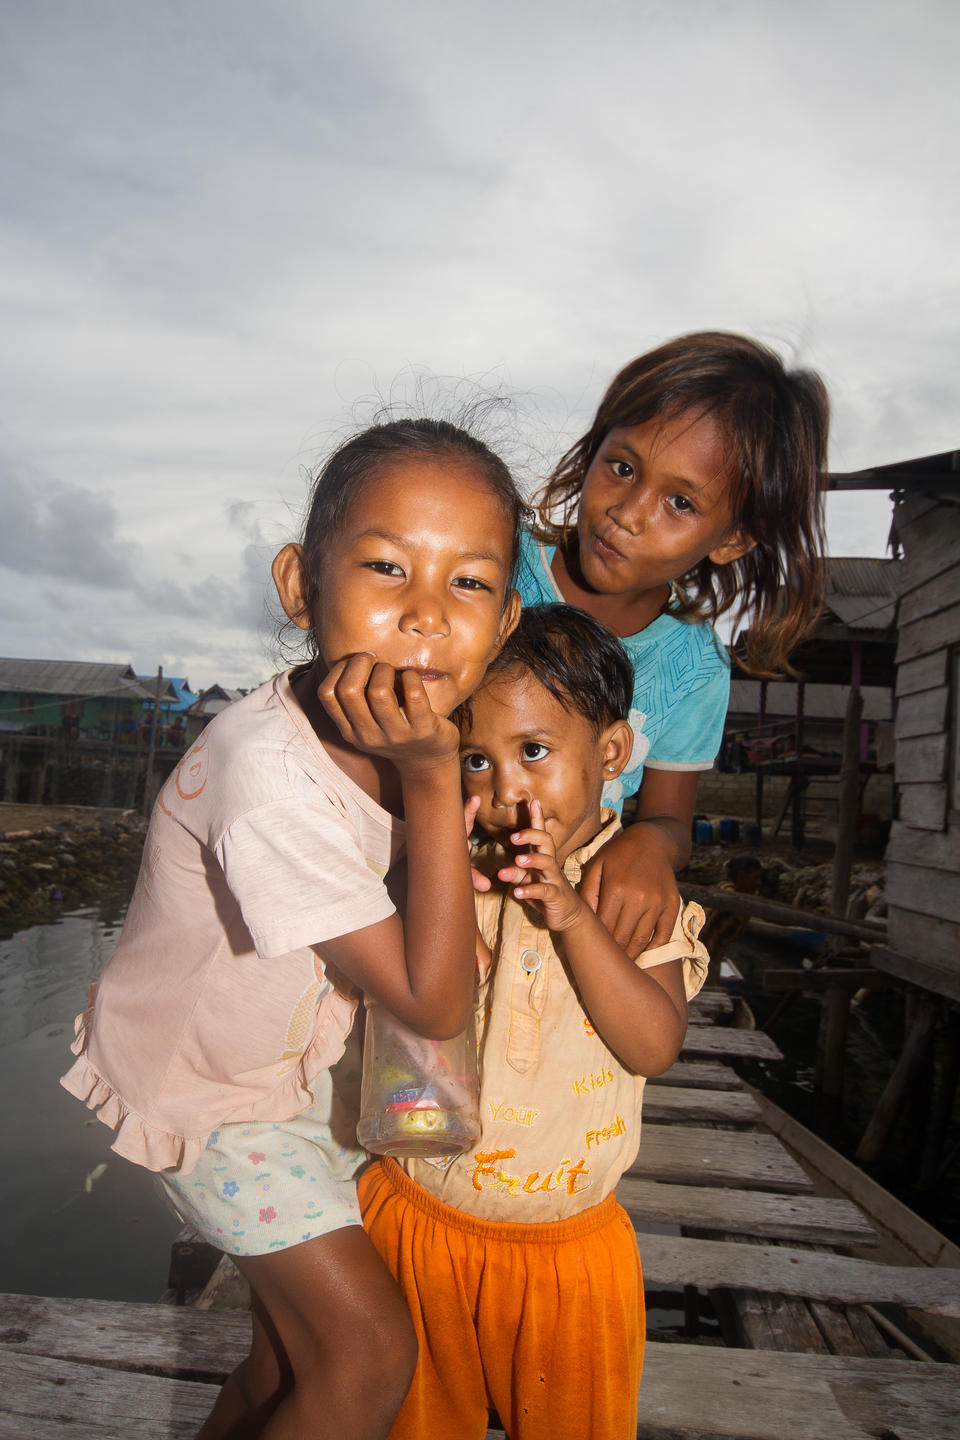 Three local kids posing for the camera